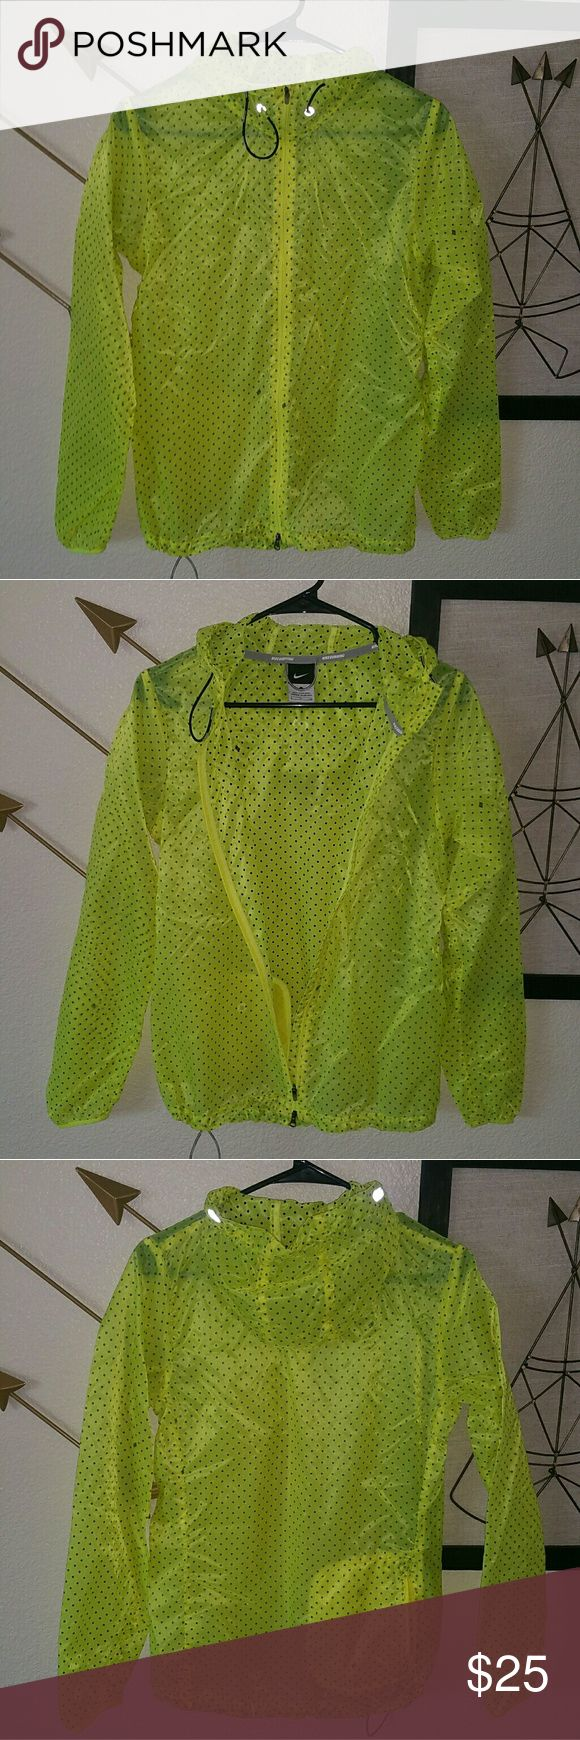 Nike Running Jacket This is a very light weight. It is rain proof. Has a hoodie. It's bright yellow with black polka dots. There is no front pockets. But one back poket. Has a string tightener at the bottom of the jacket. Nike Jackets & Coats